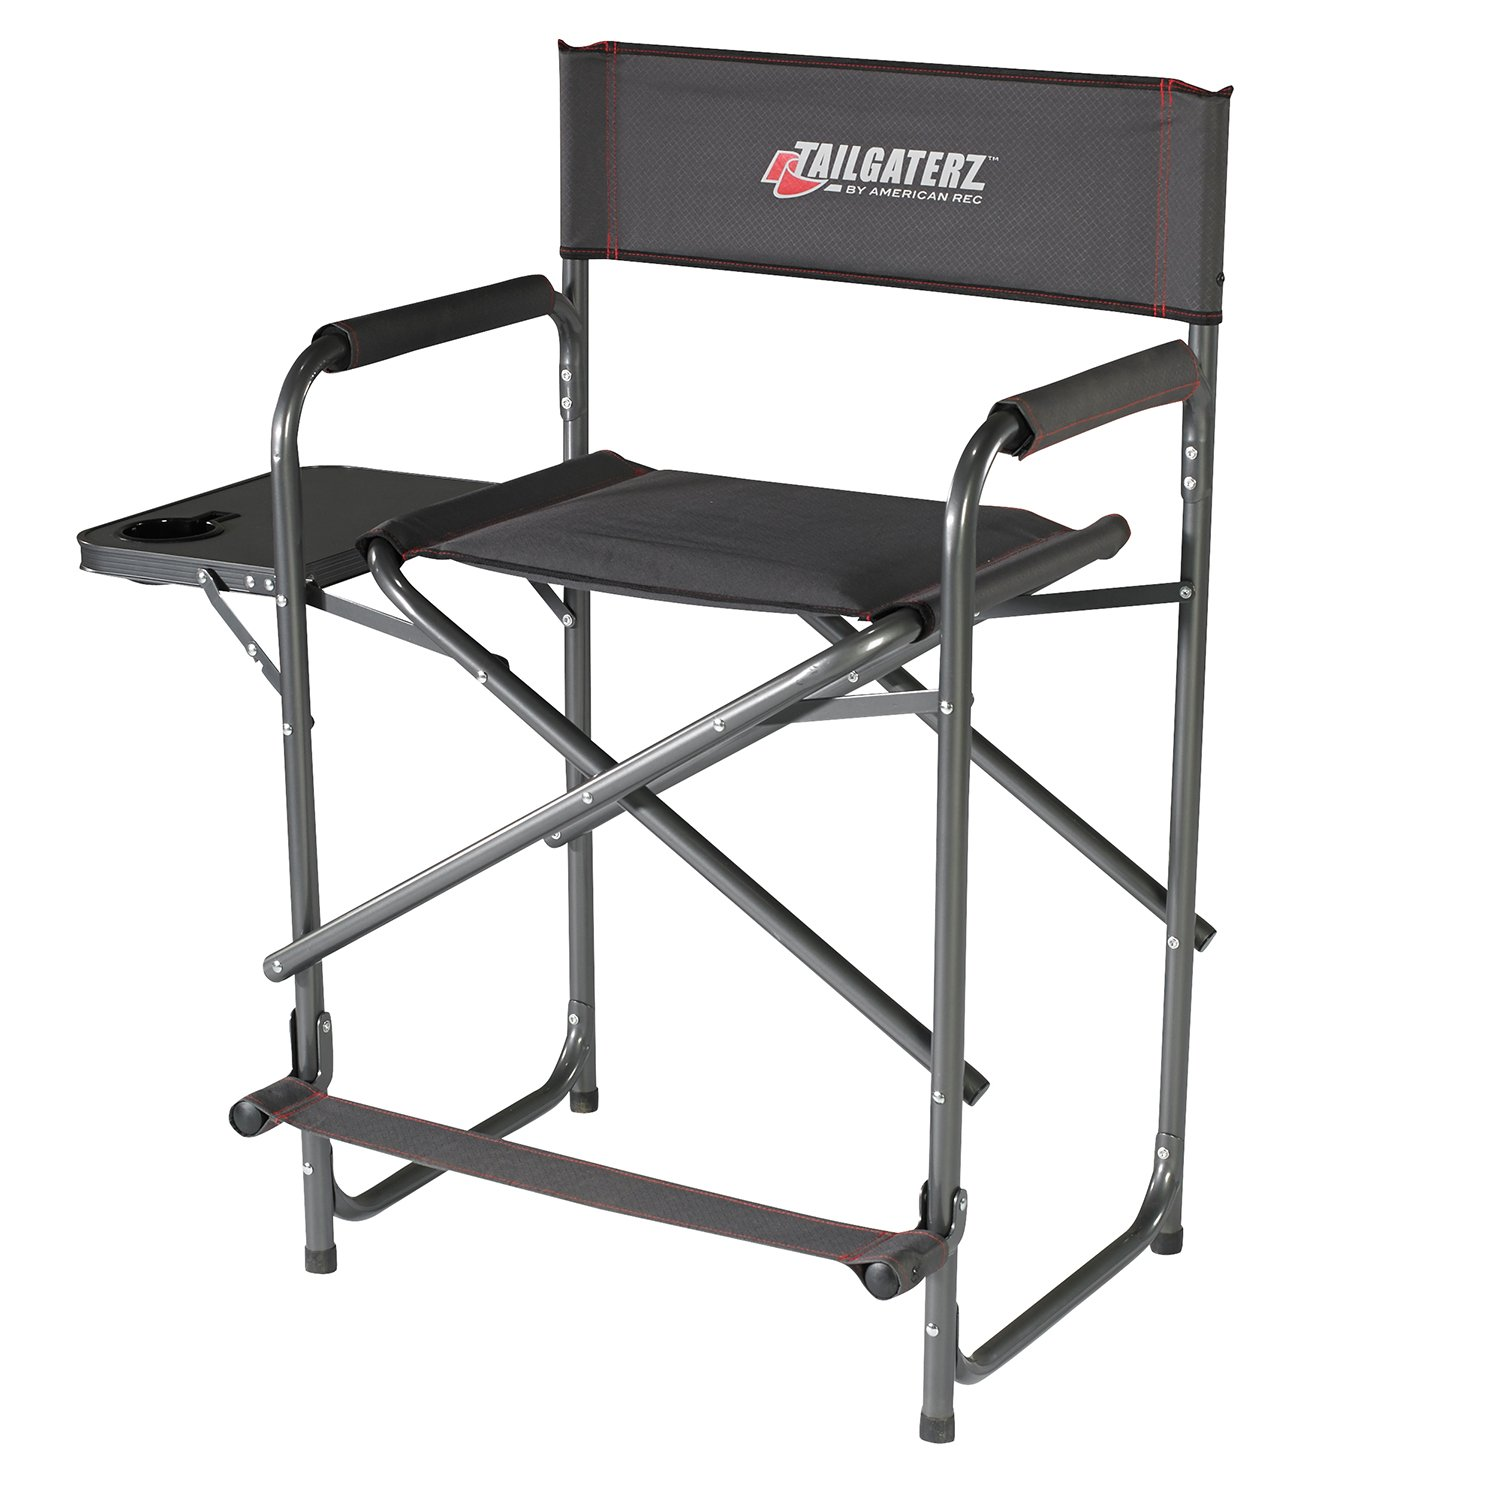 Tailgaterz Take-Out Seat Steel Chair with Side Table, Game Day